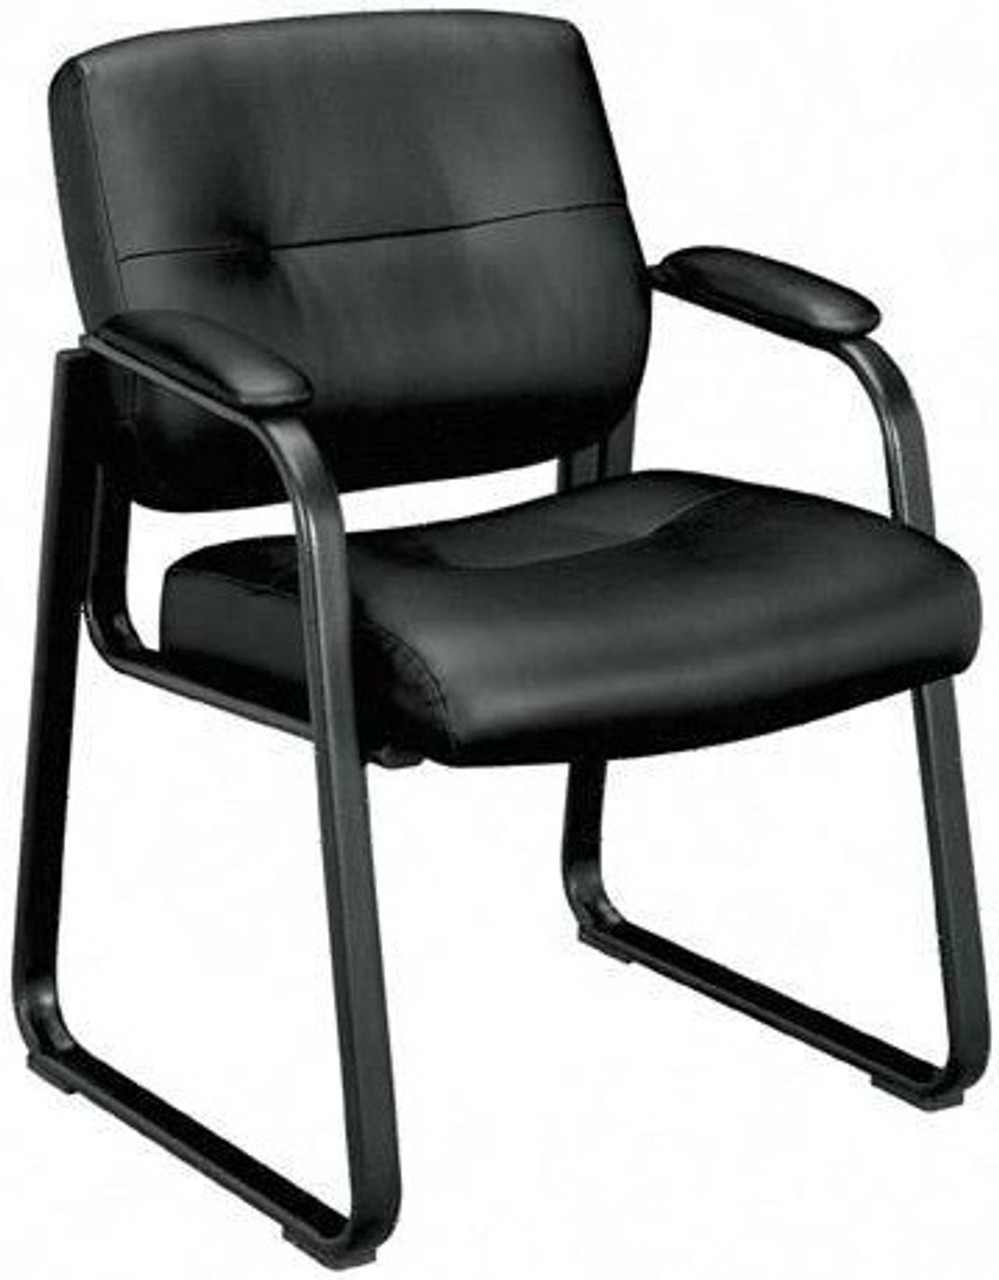 Basyx Plush Leather Office Guest Chair Vl693